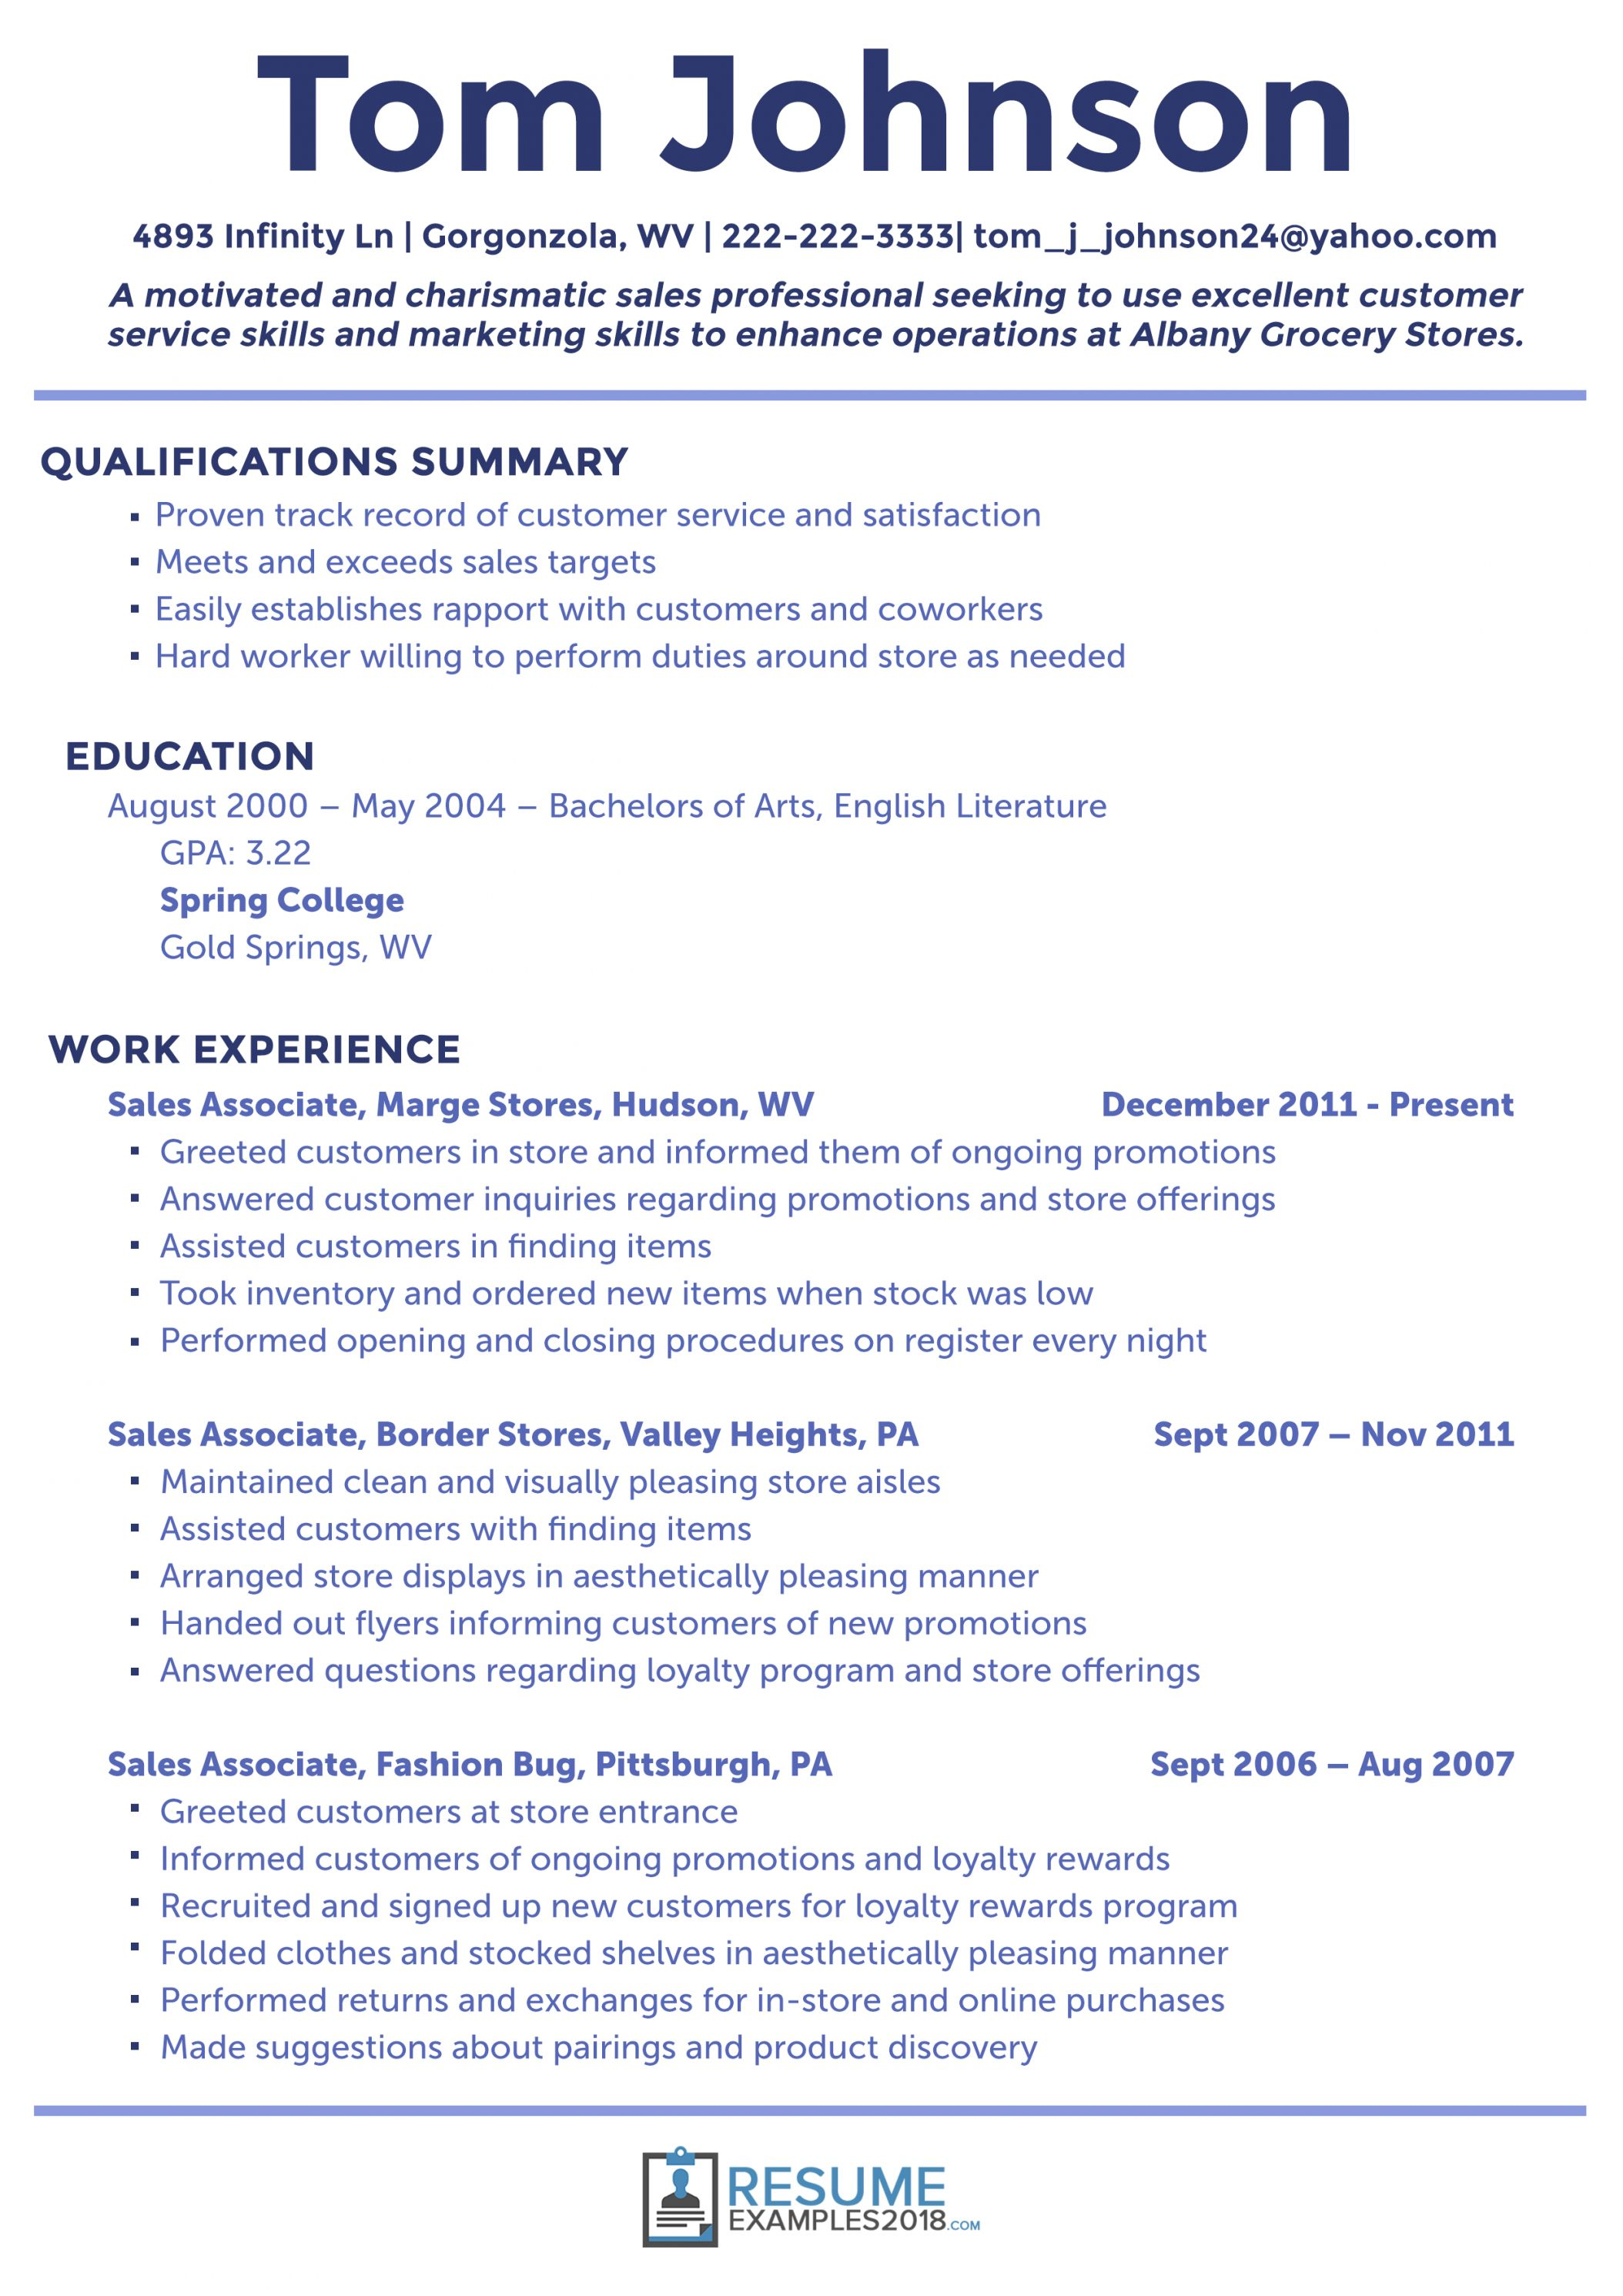 Best Resume Format For Sales Professionals Template 2018 3 Resume Format Resume Examples Sample